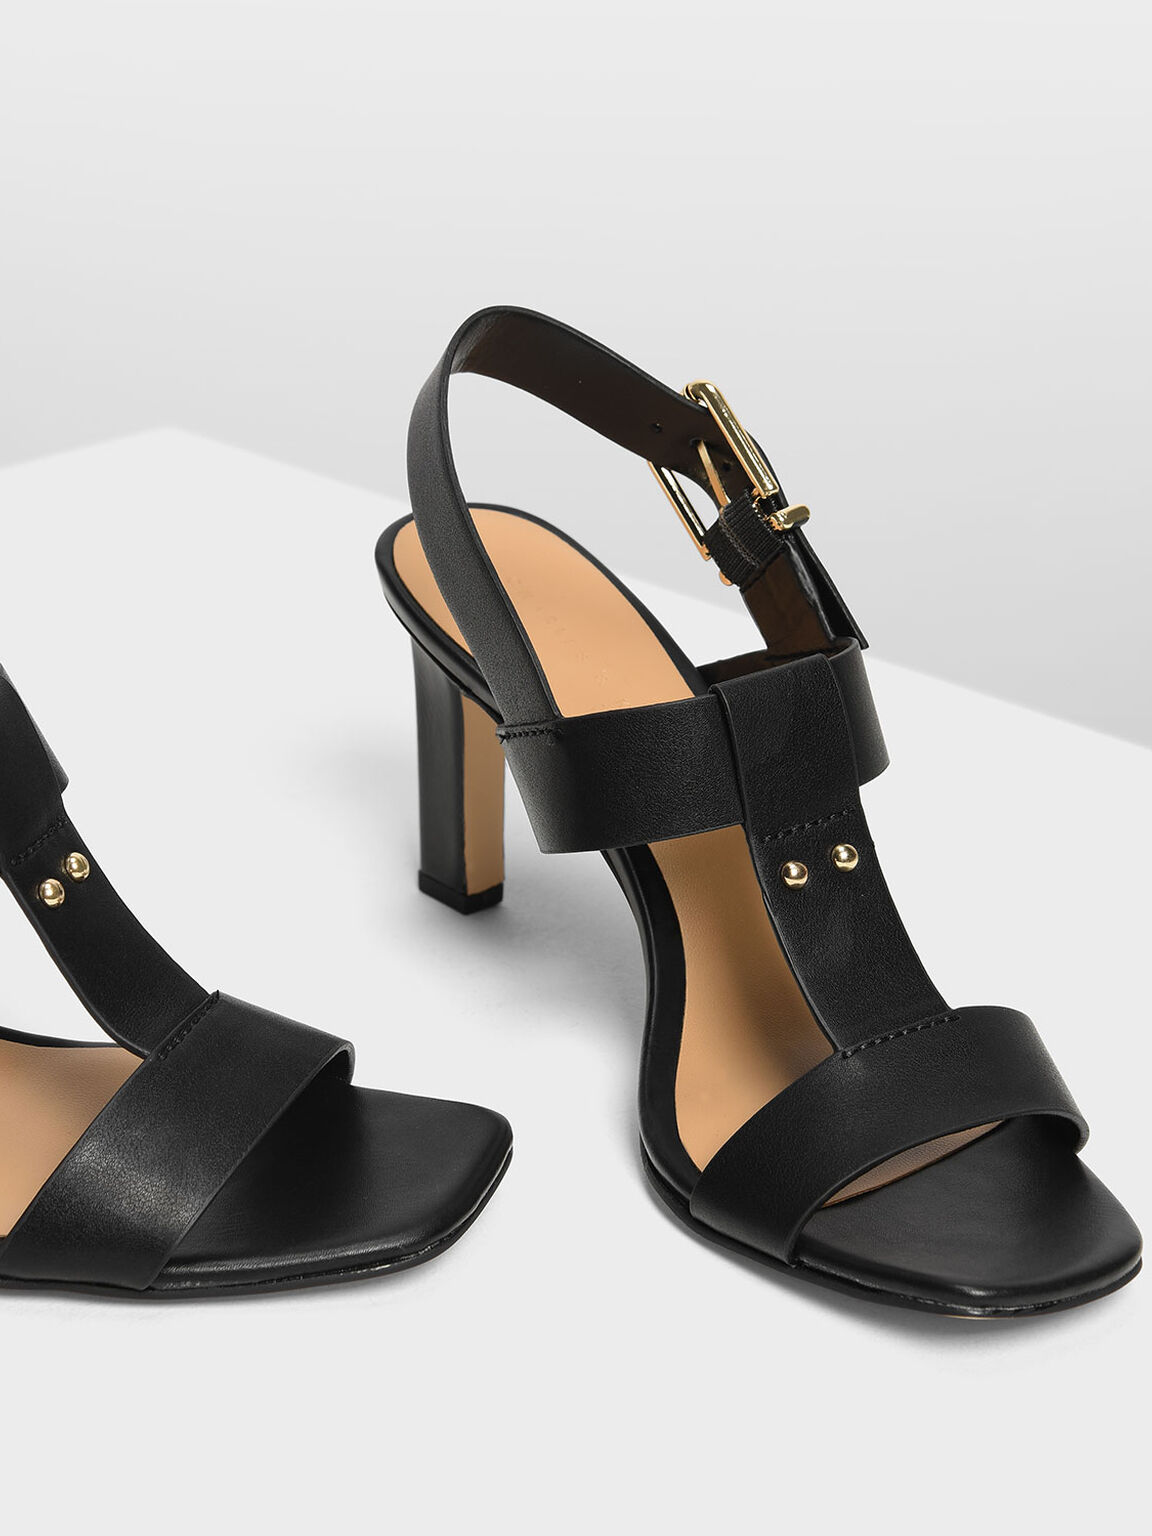 T-Bar Slingback Heels, Black, hi-res